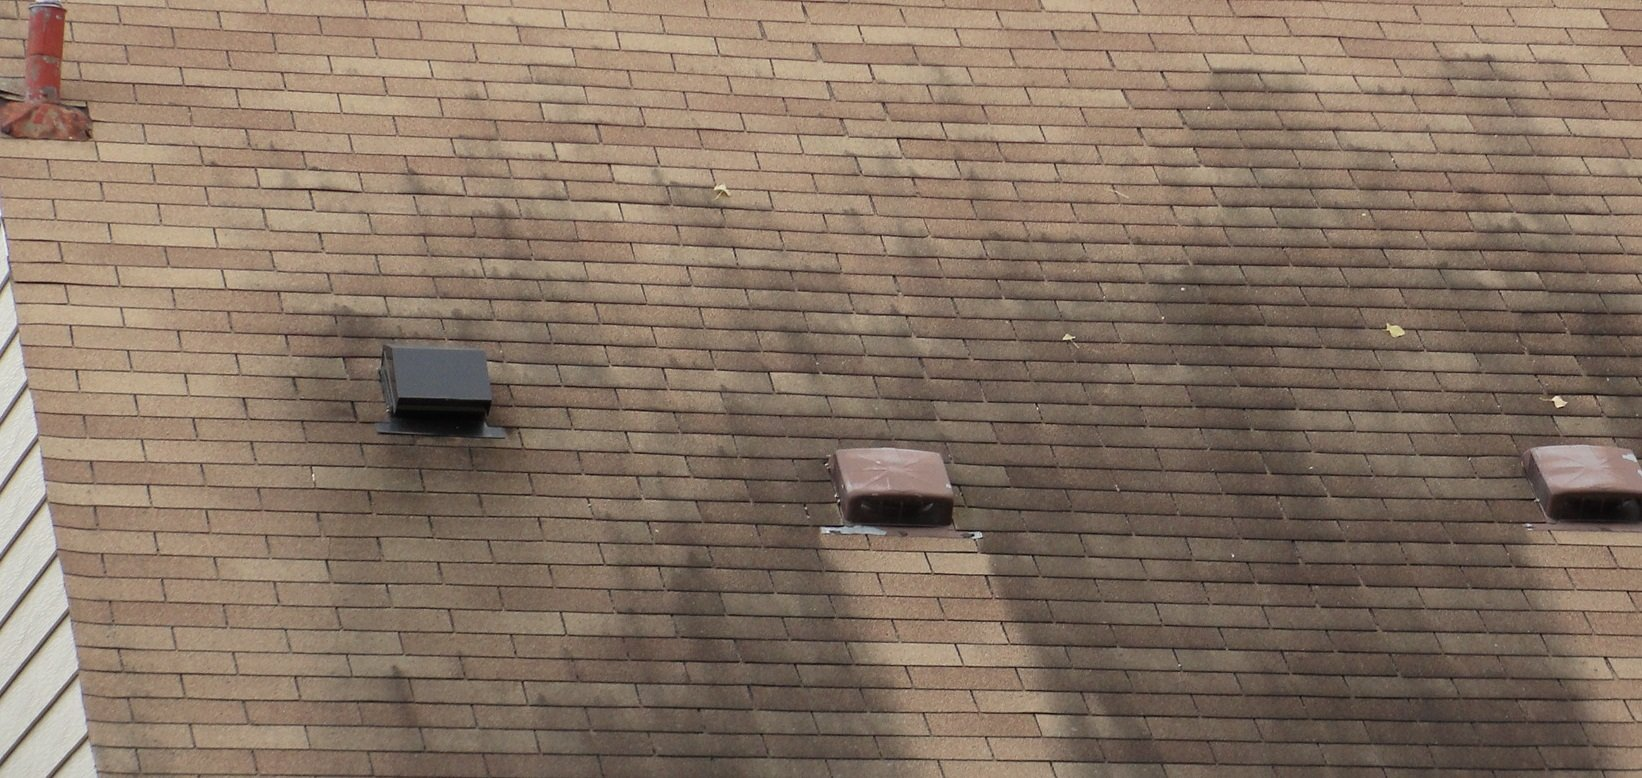 Leaking Roofs Signs 7 Signs For Homeowners By Asr